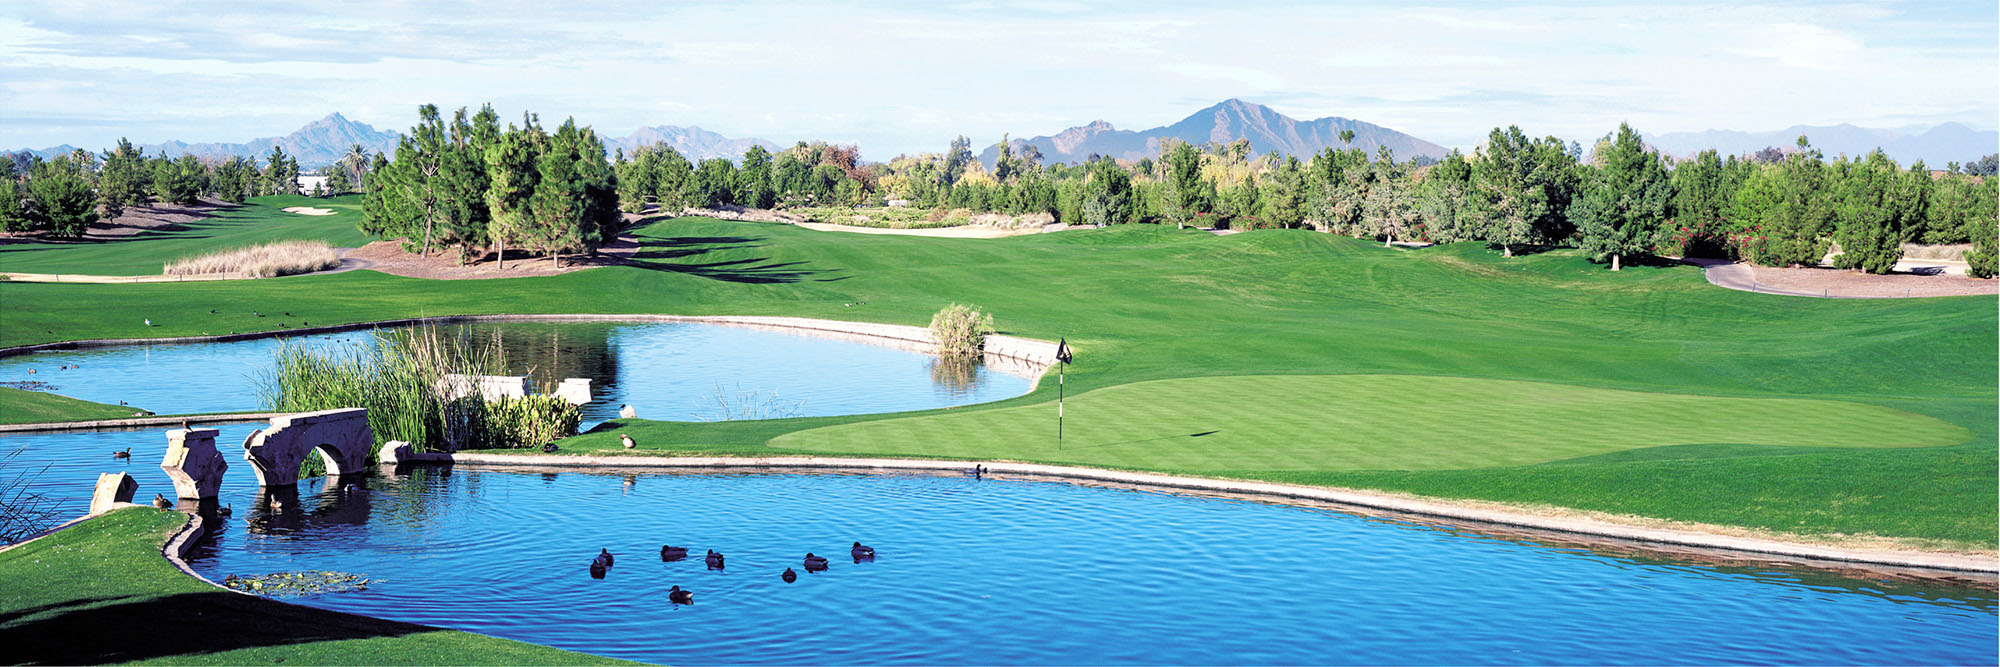 Golf Course Image - Raven South Mountain No. 18